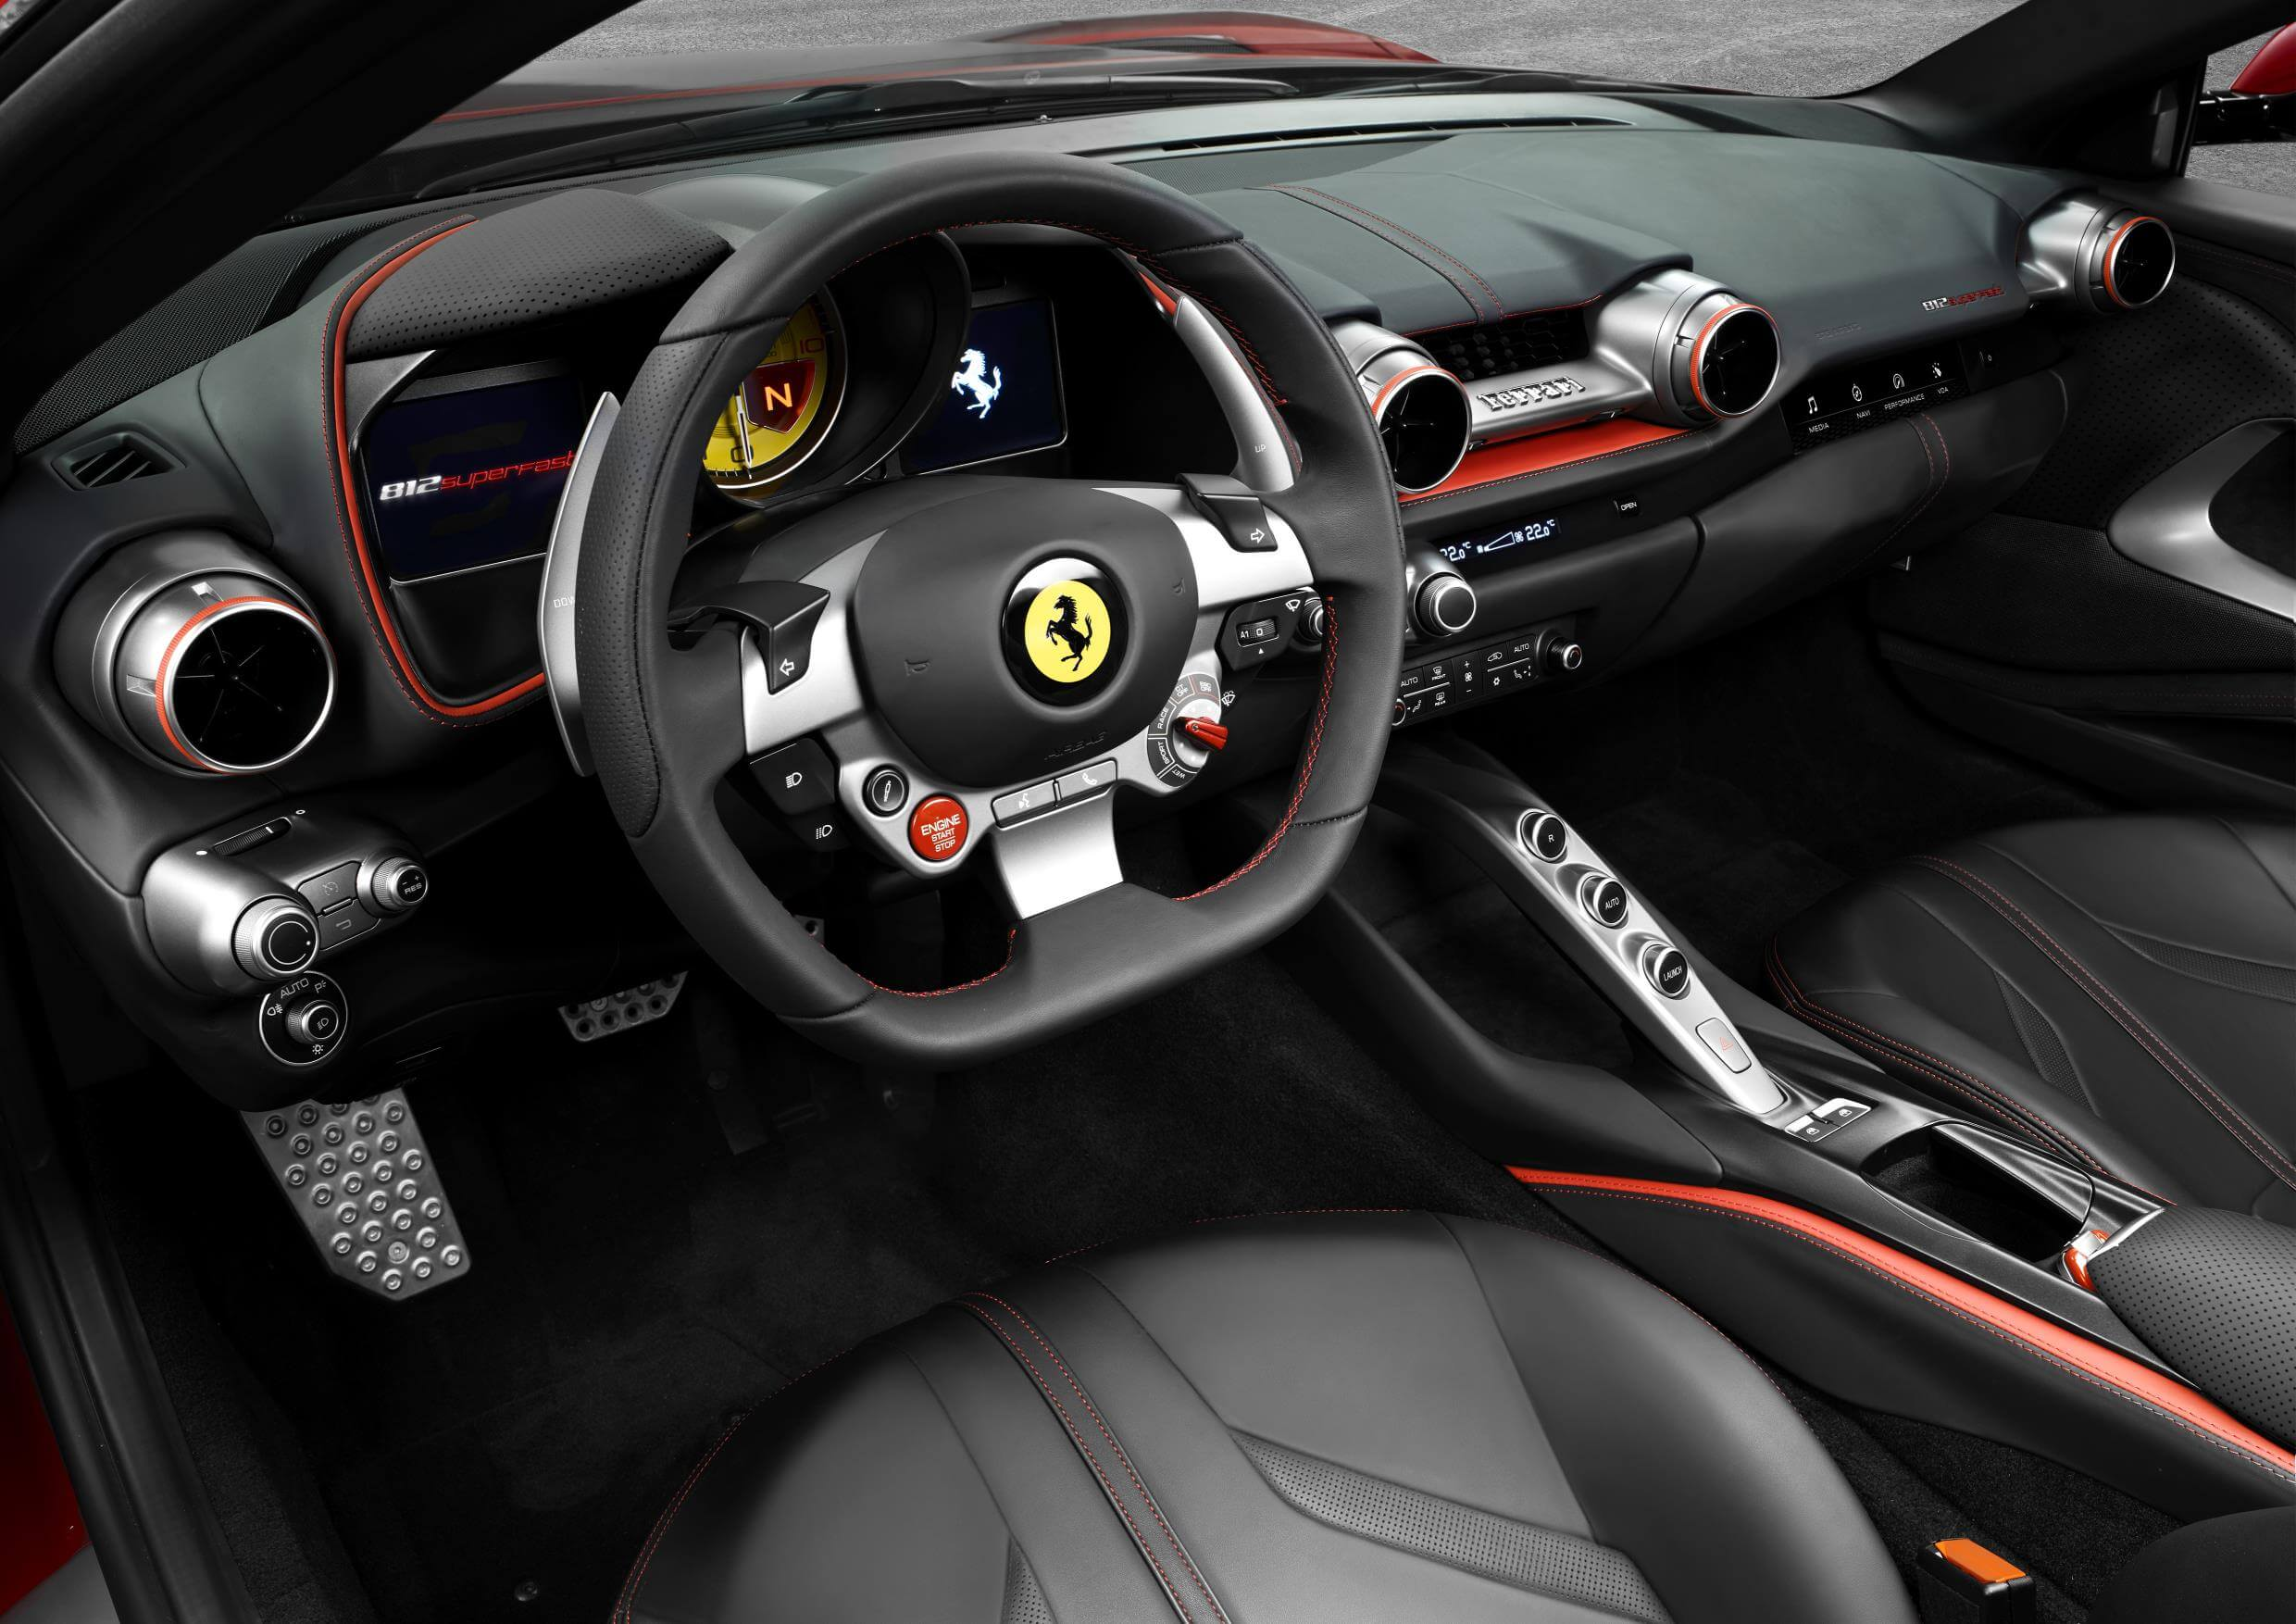 Ferrari 812 Superfast: interior